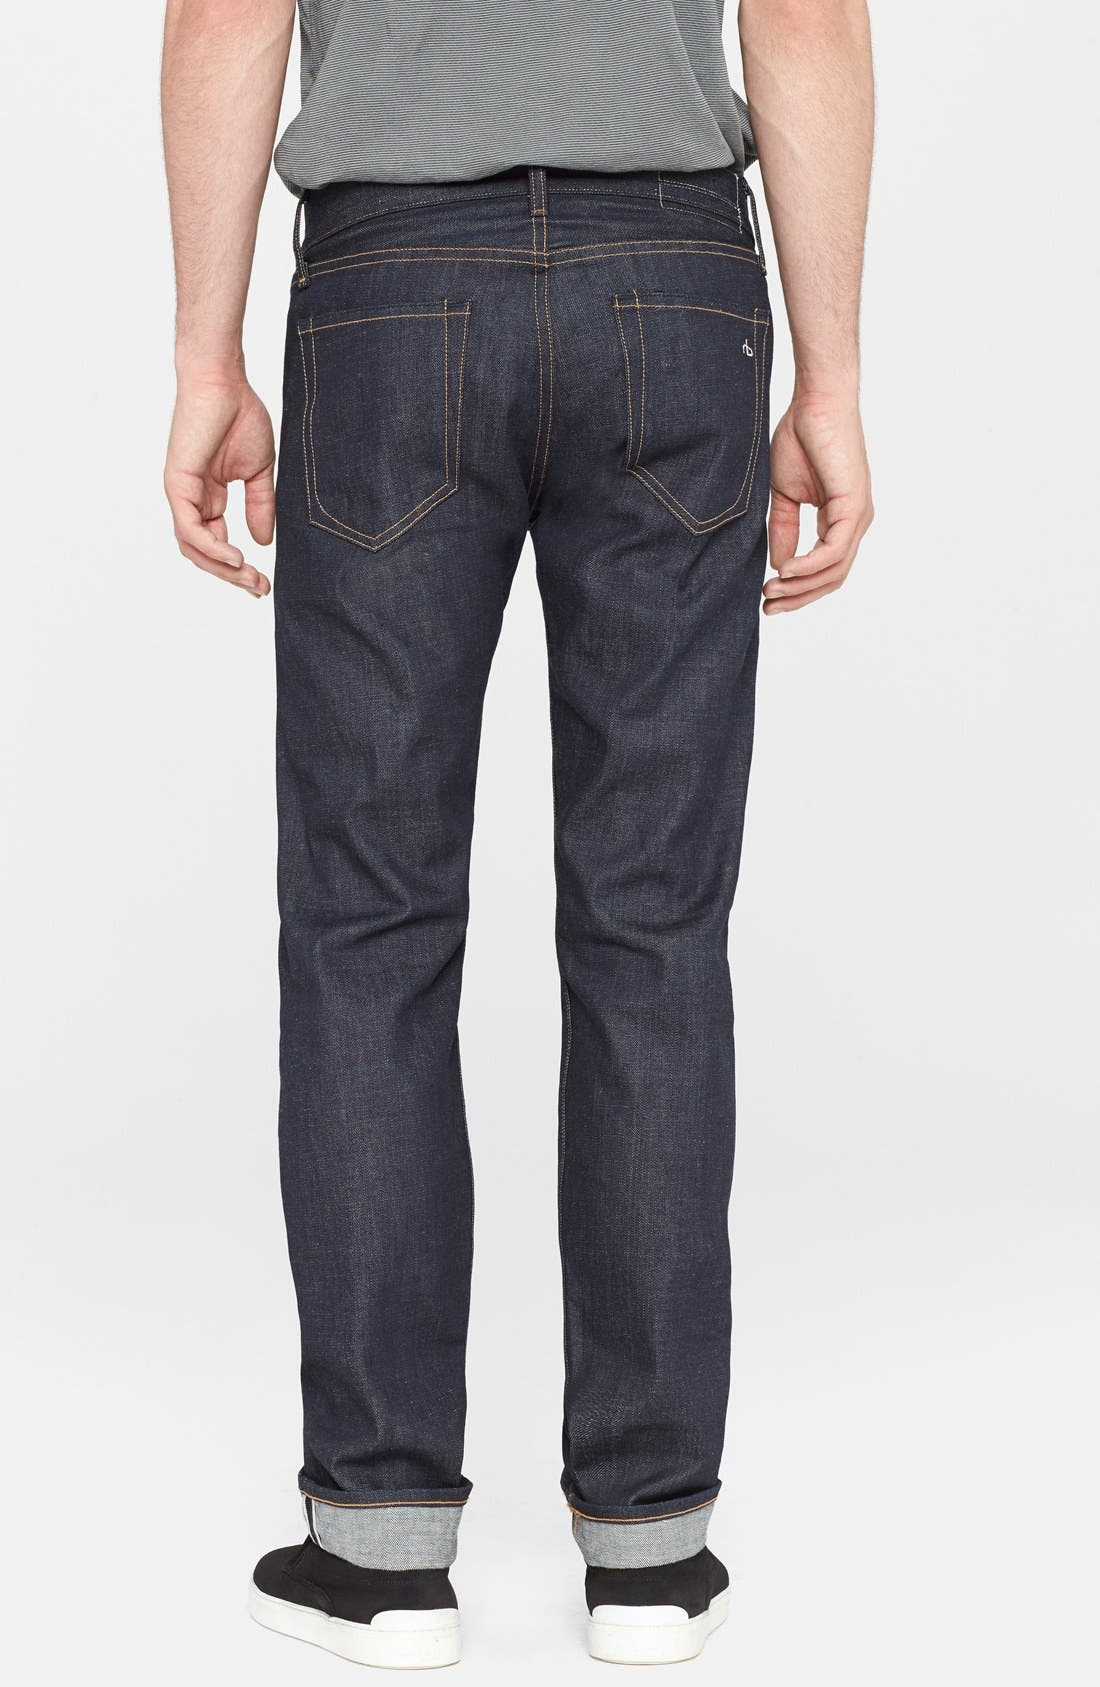 RAG & BONE,                             Standard Issue Fit 2 Slim Fit Raw Selvedge Jeans,                             Alternate thumbnail 5, color,                             419